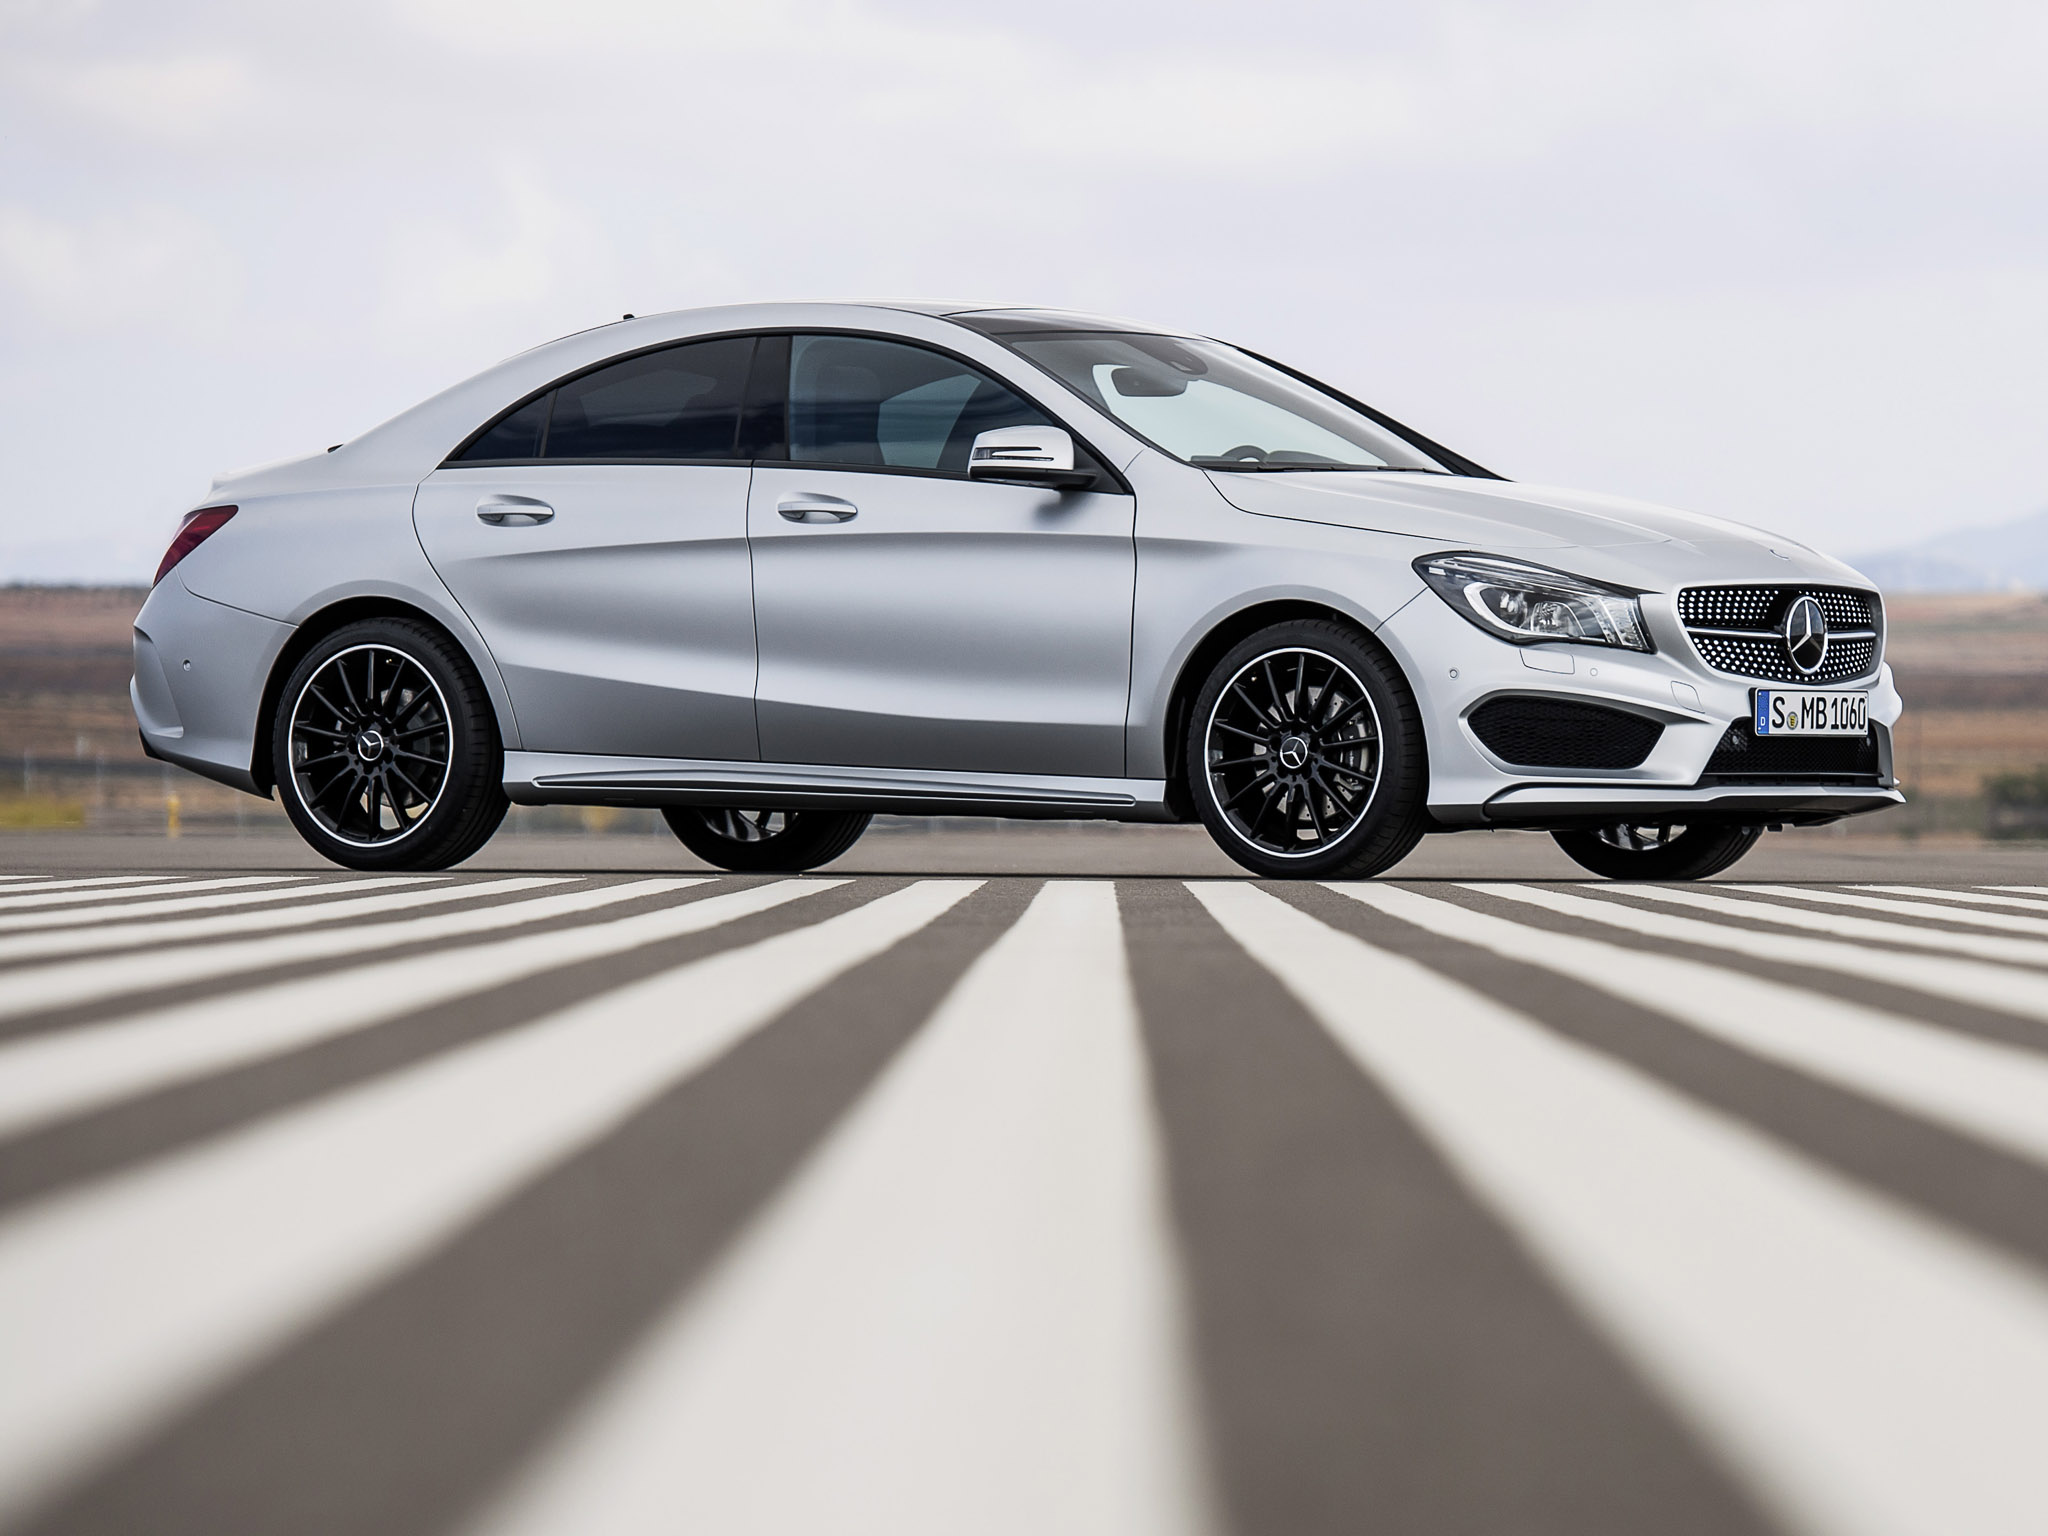 Mercedes cla 250 amg sports package edition 1 2013 for Mercedes benz cla 250 sport 2013